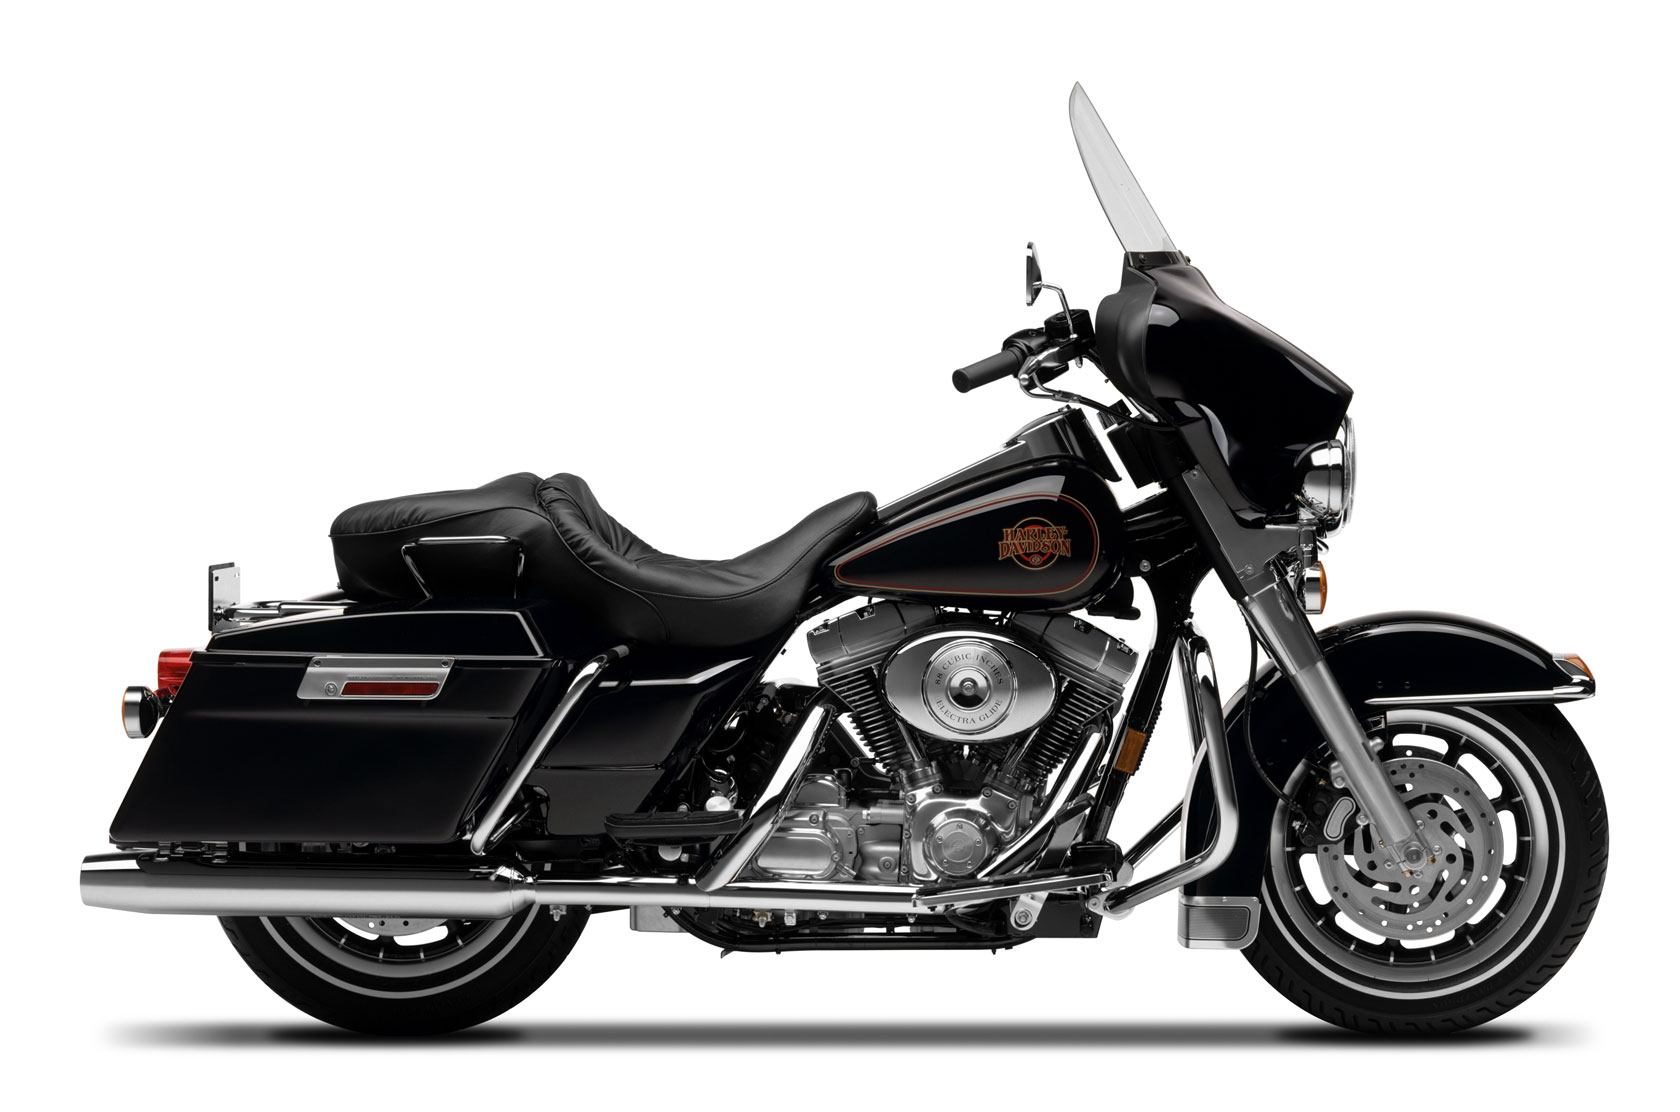 Harley-Davidson FLHTC Electra Glide Classic 2001 pics #17698